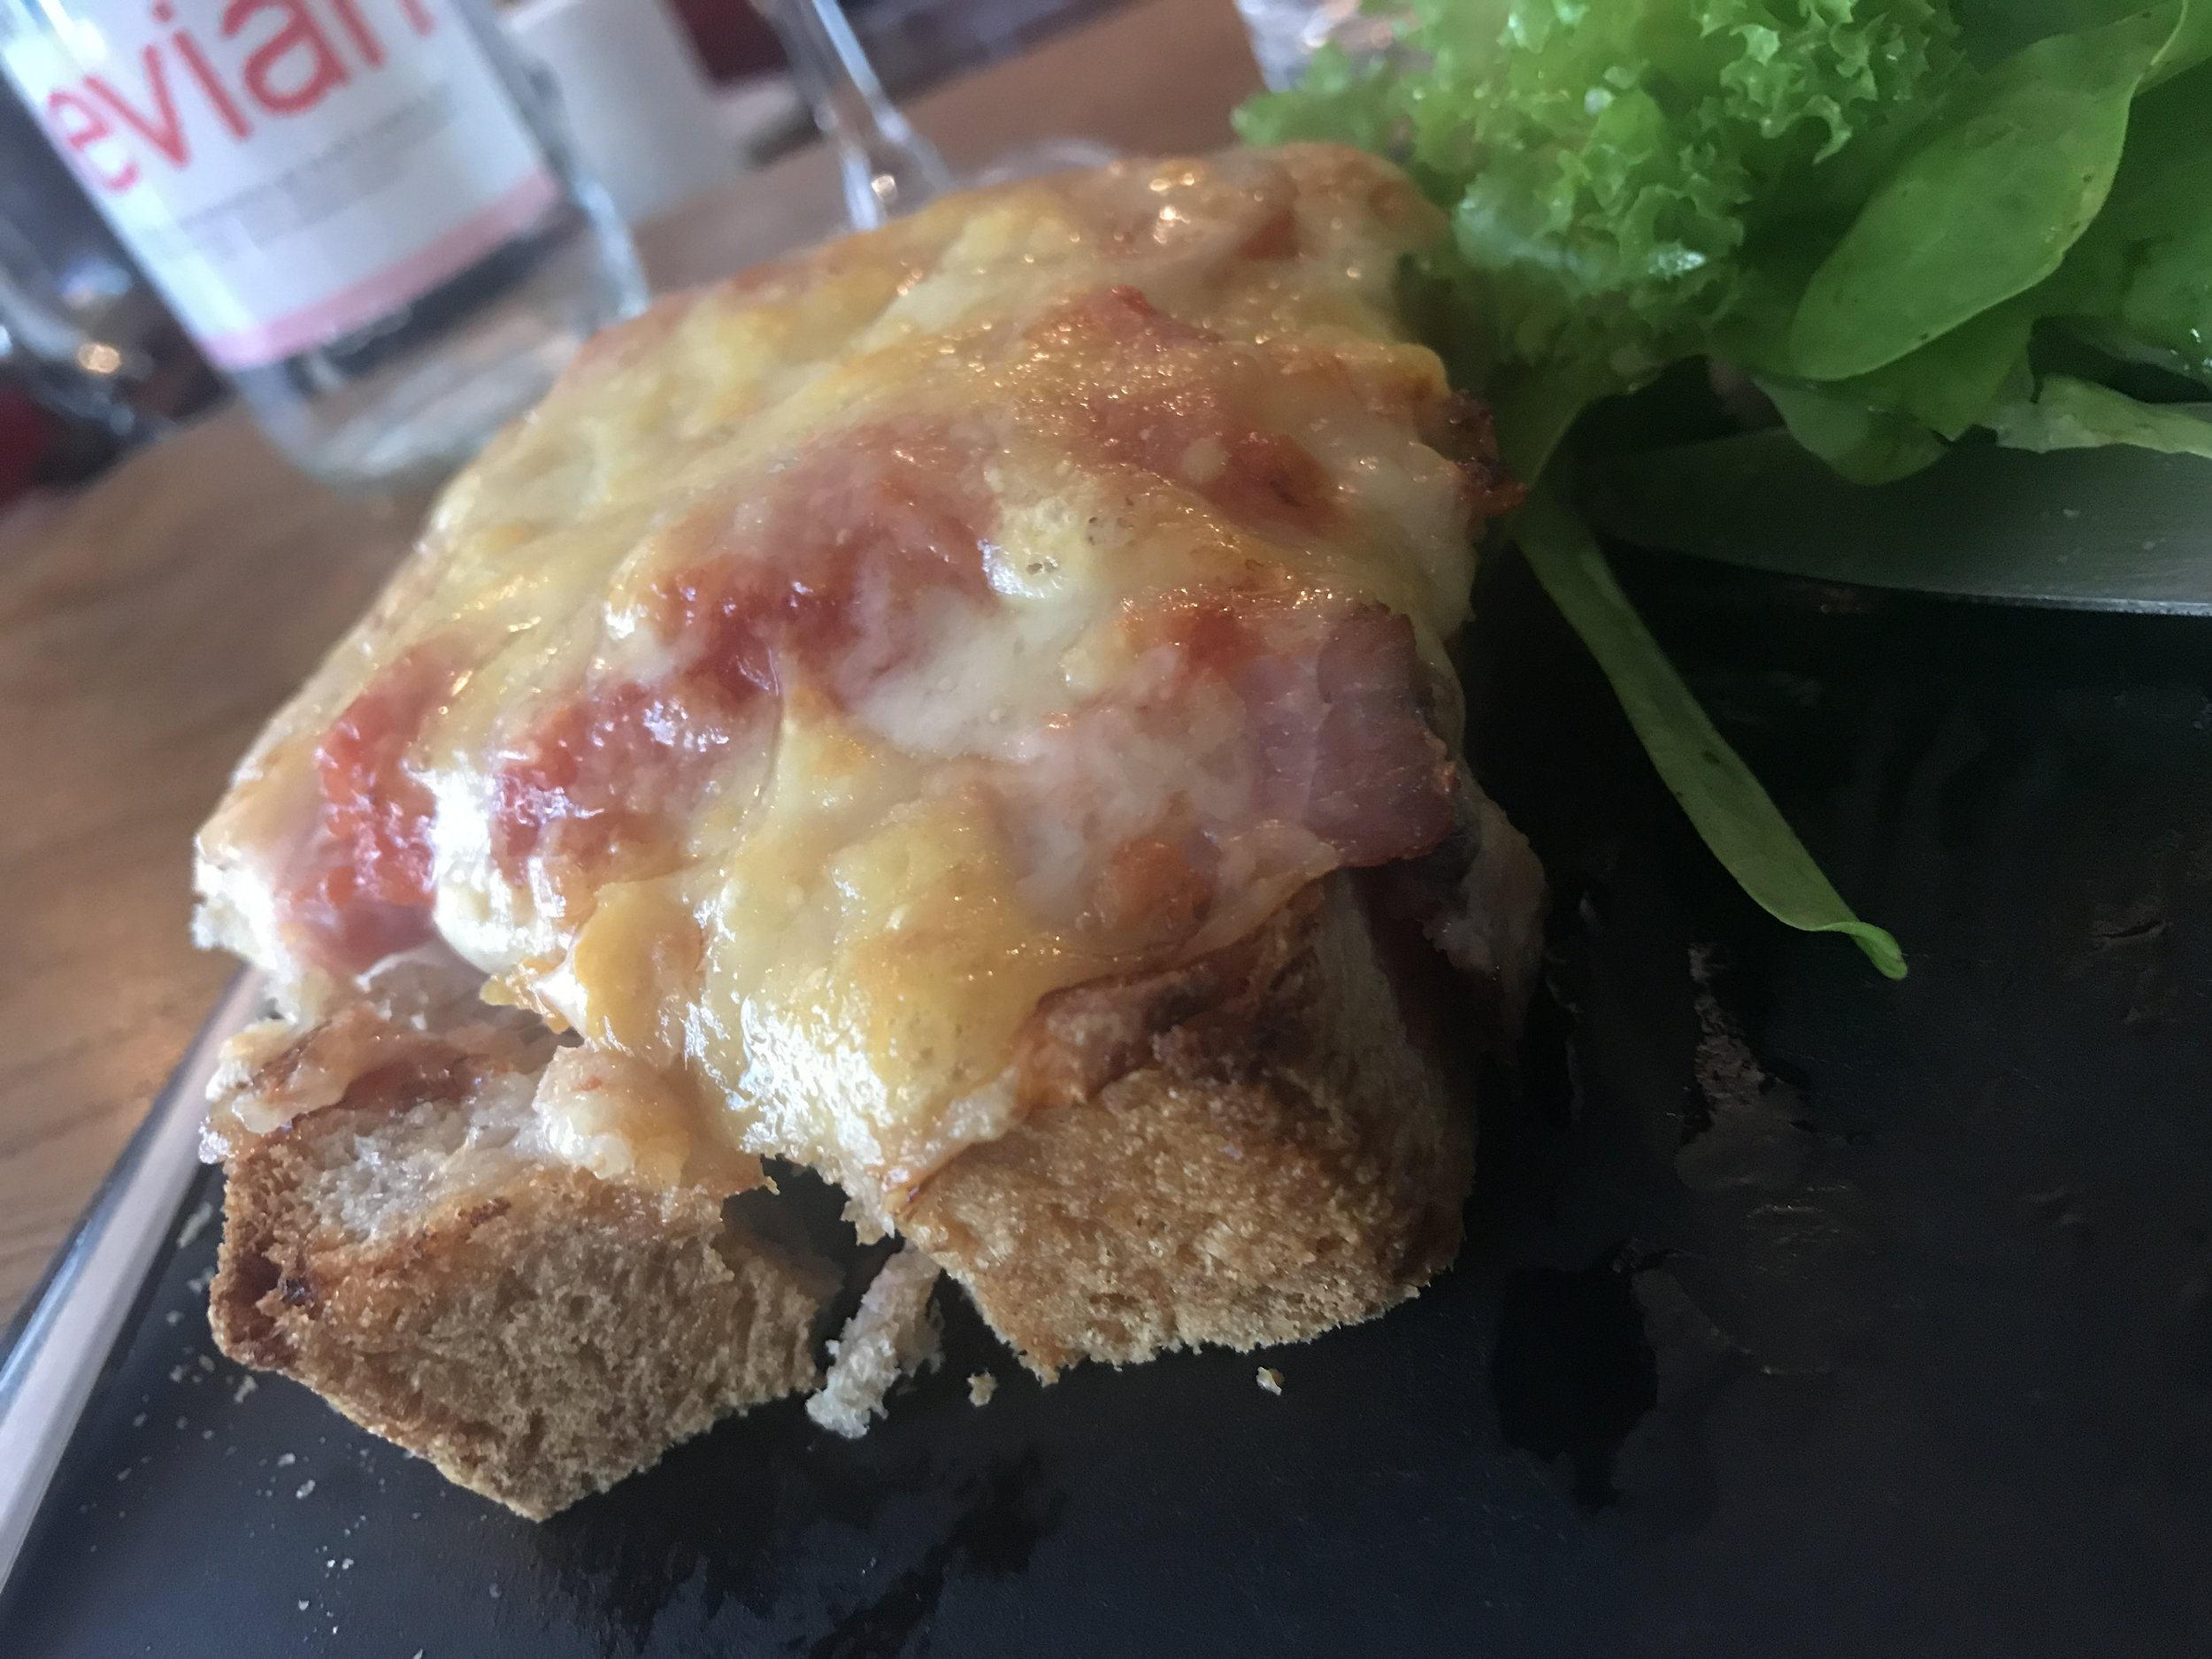 My happy place - the Croque Monsieur at  La Dilletante